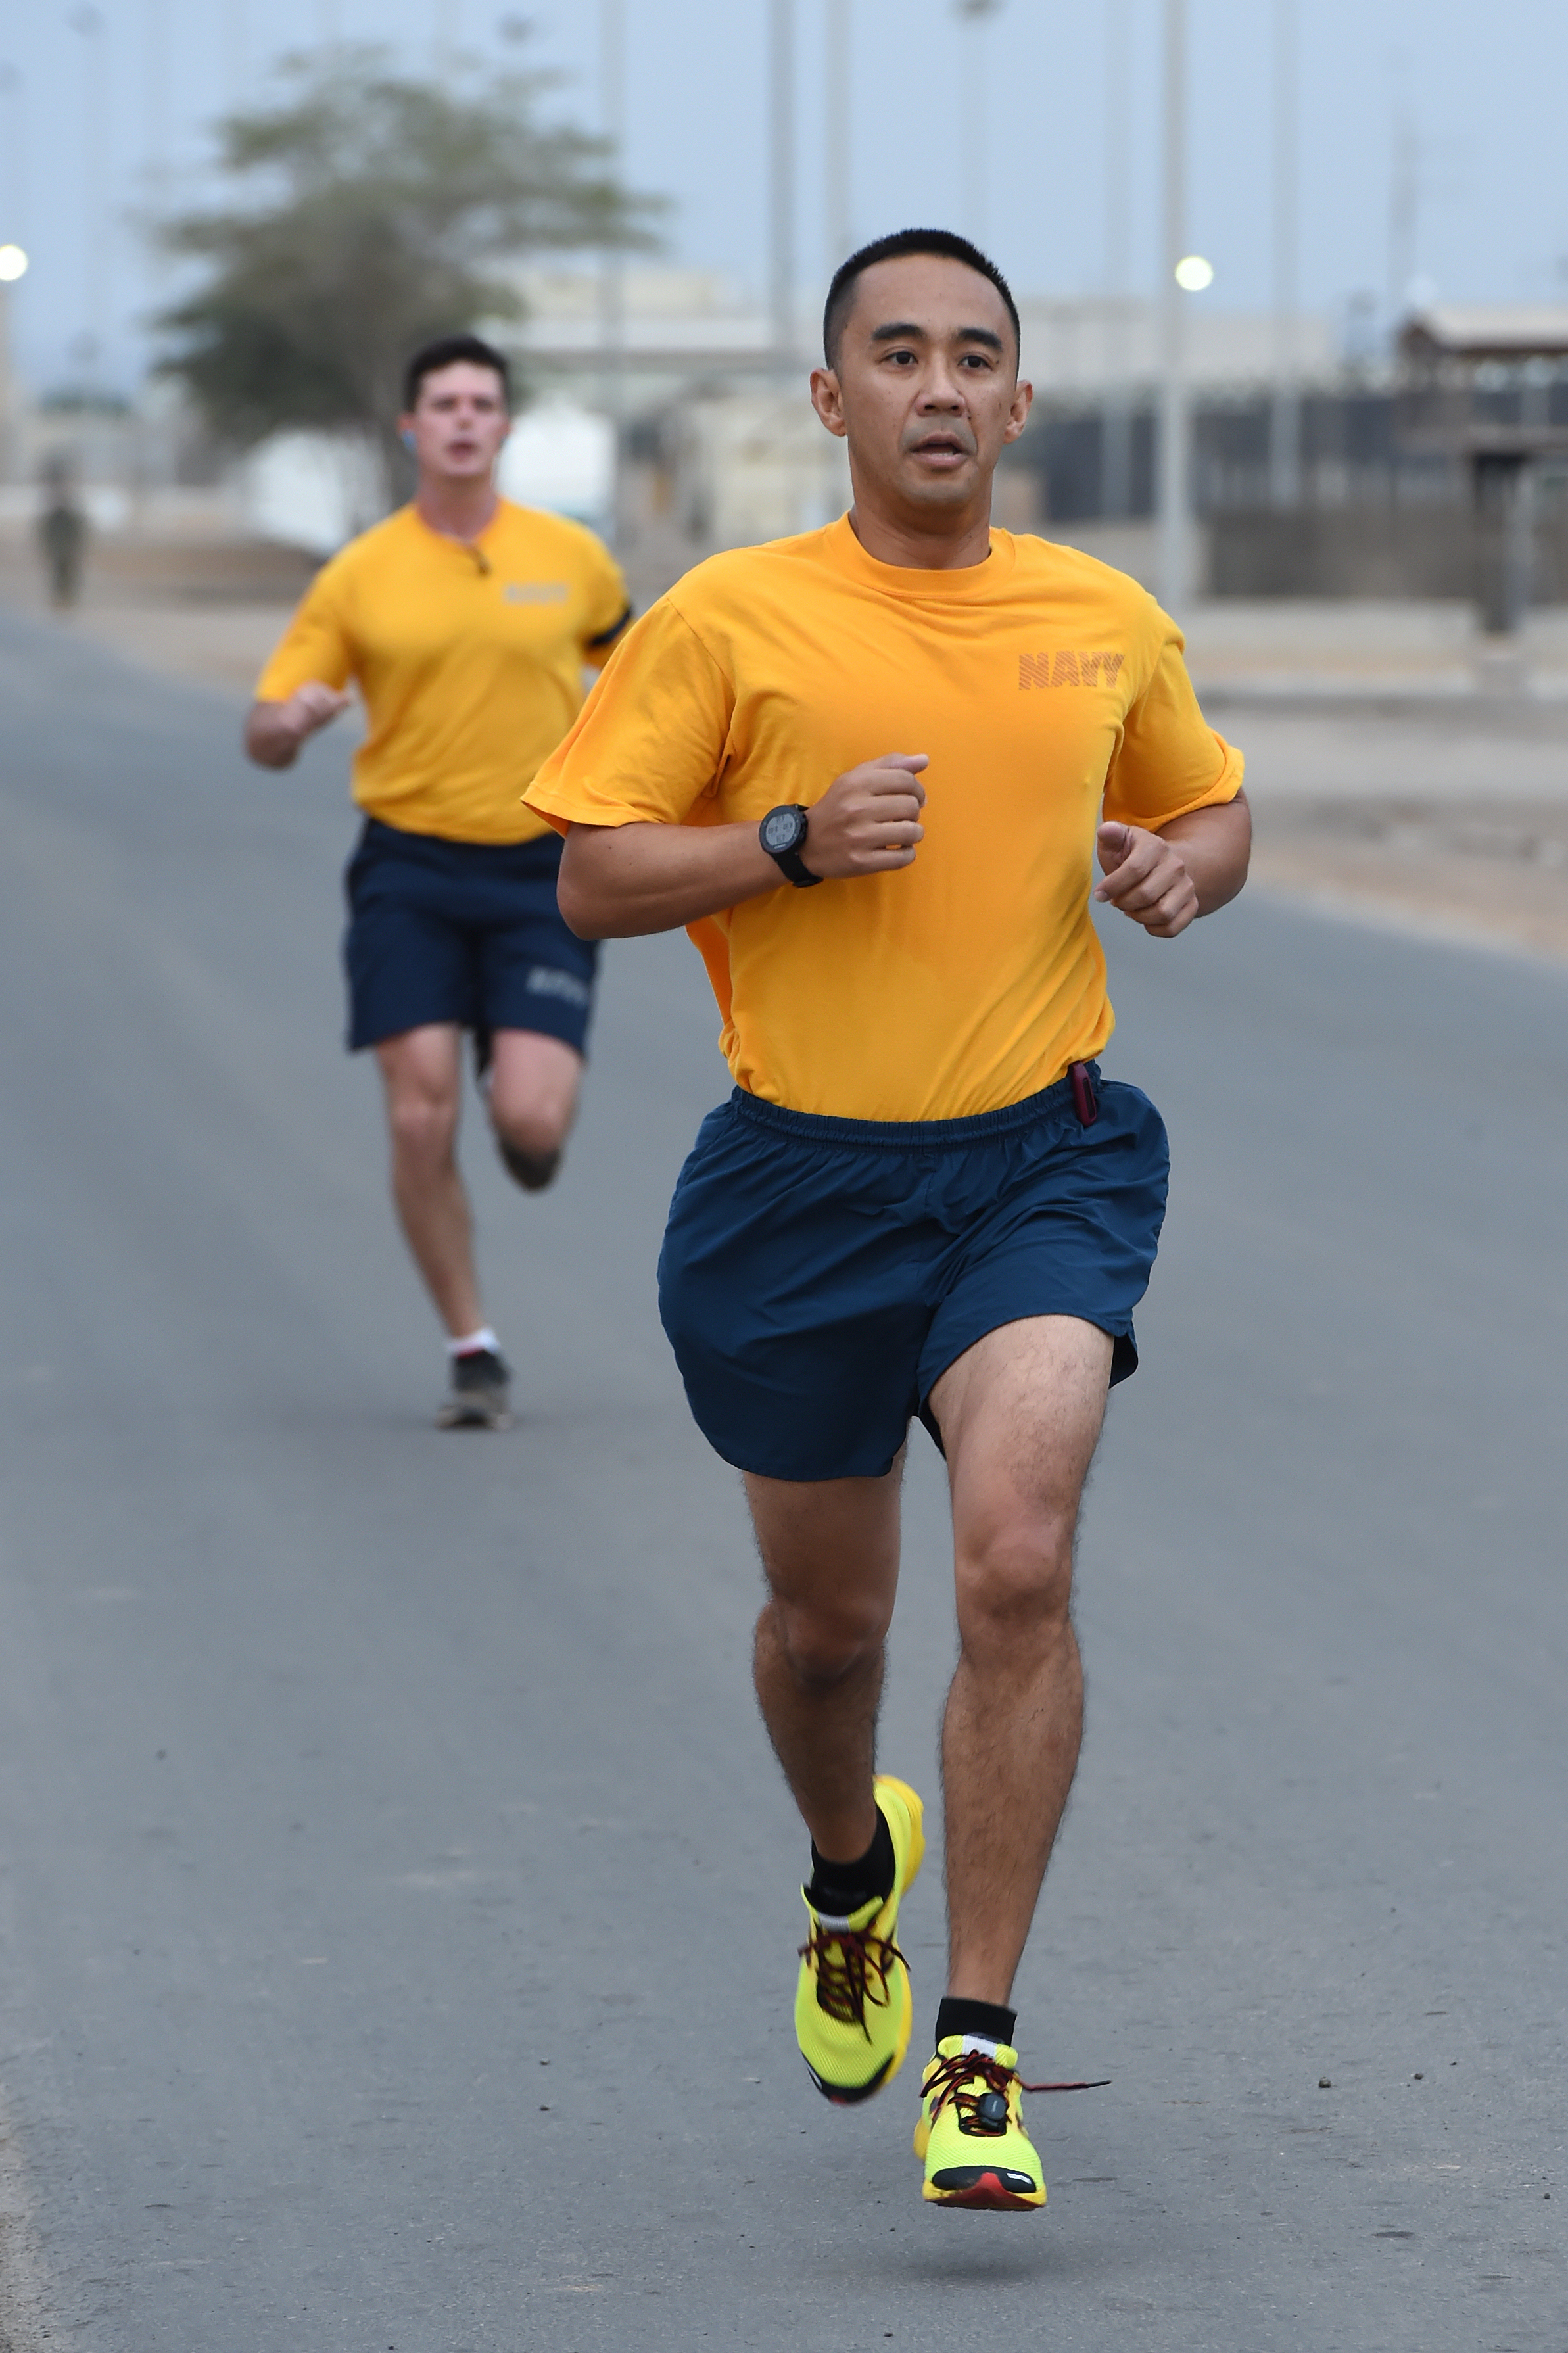 U.S. Navy Lt. Cmdr. Michael Cagulada, military planner for Combined Joint Task Force-Horn of Africa (CJTF-HOA) leads his fellow Sailors to the halfway point of the 1.5 mile run during a practice physical readiness test (PRT) at Camp Lemonnier, Djibouti, Feb. 24, 2017. The test was intended to prepare Sailors assigned to CJTF-HOA for the implementation of the Navy Physical Fitness Assessment program which consists of a standard medical screening, body composition assessment and a PRT to evaluate strength, endurance and cardiovascular fitness. (U.S. Air National Guard photo by Master Sgt. Paul Gorman)